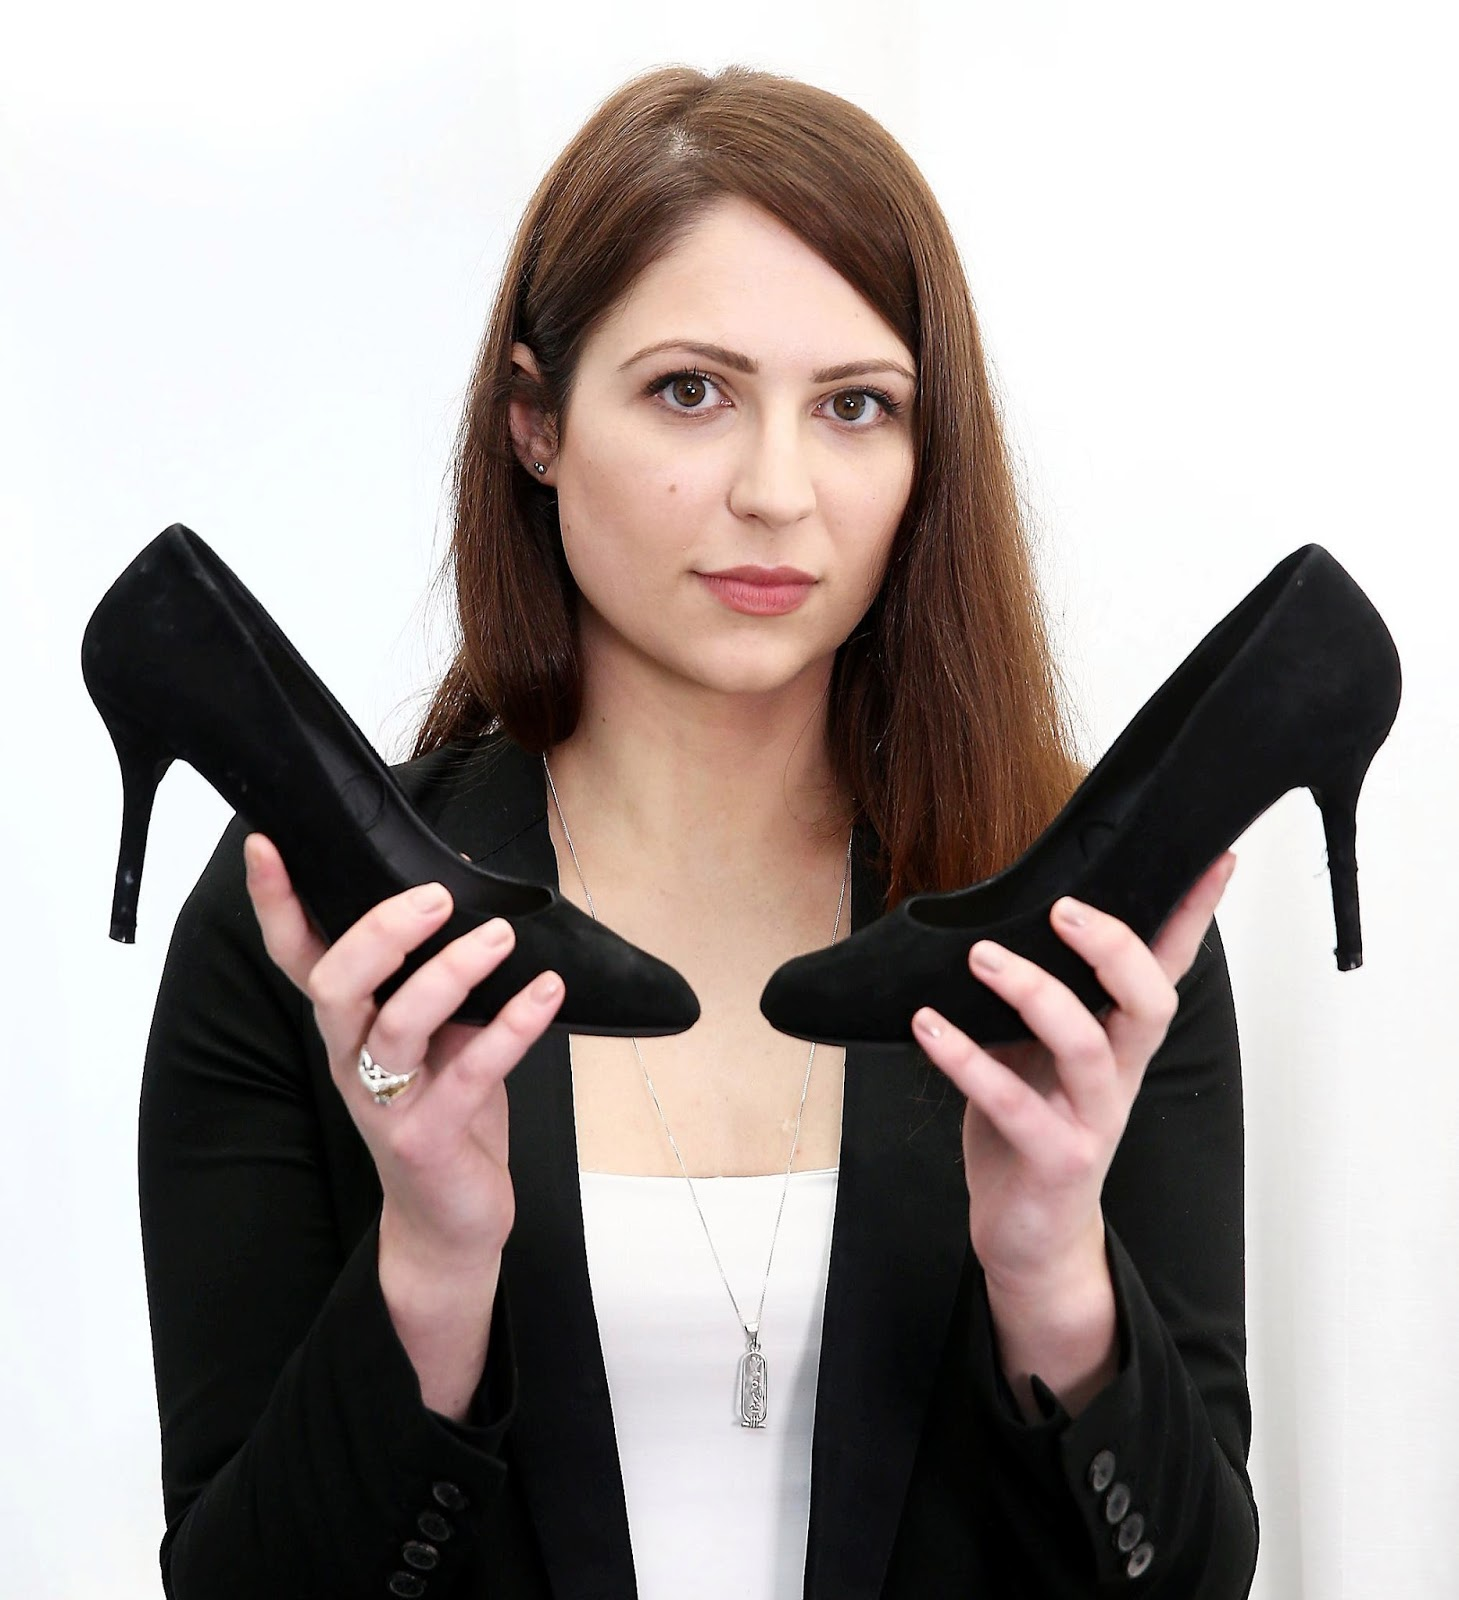 Nicola Thorp was sent home from City firm PricewaterhouseCoopers (PwC) in 2015 for not wearing high heels [4]